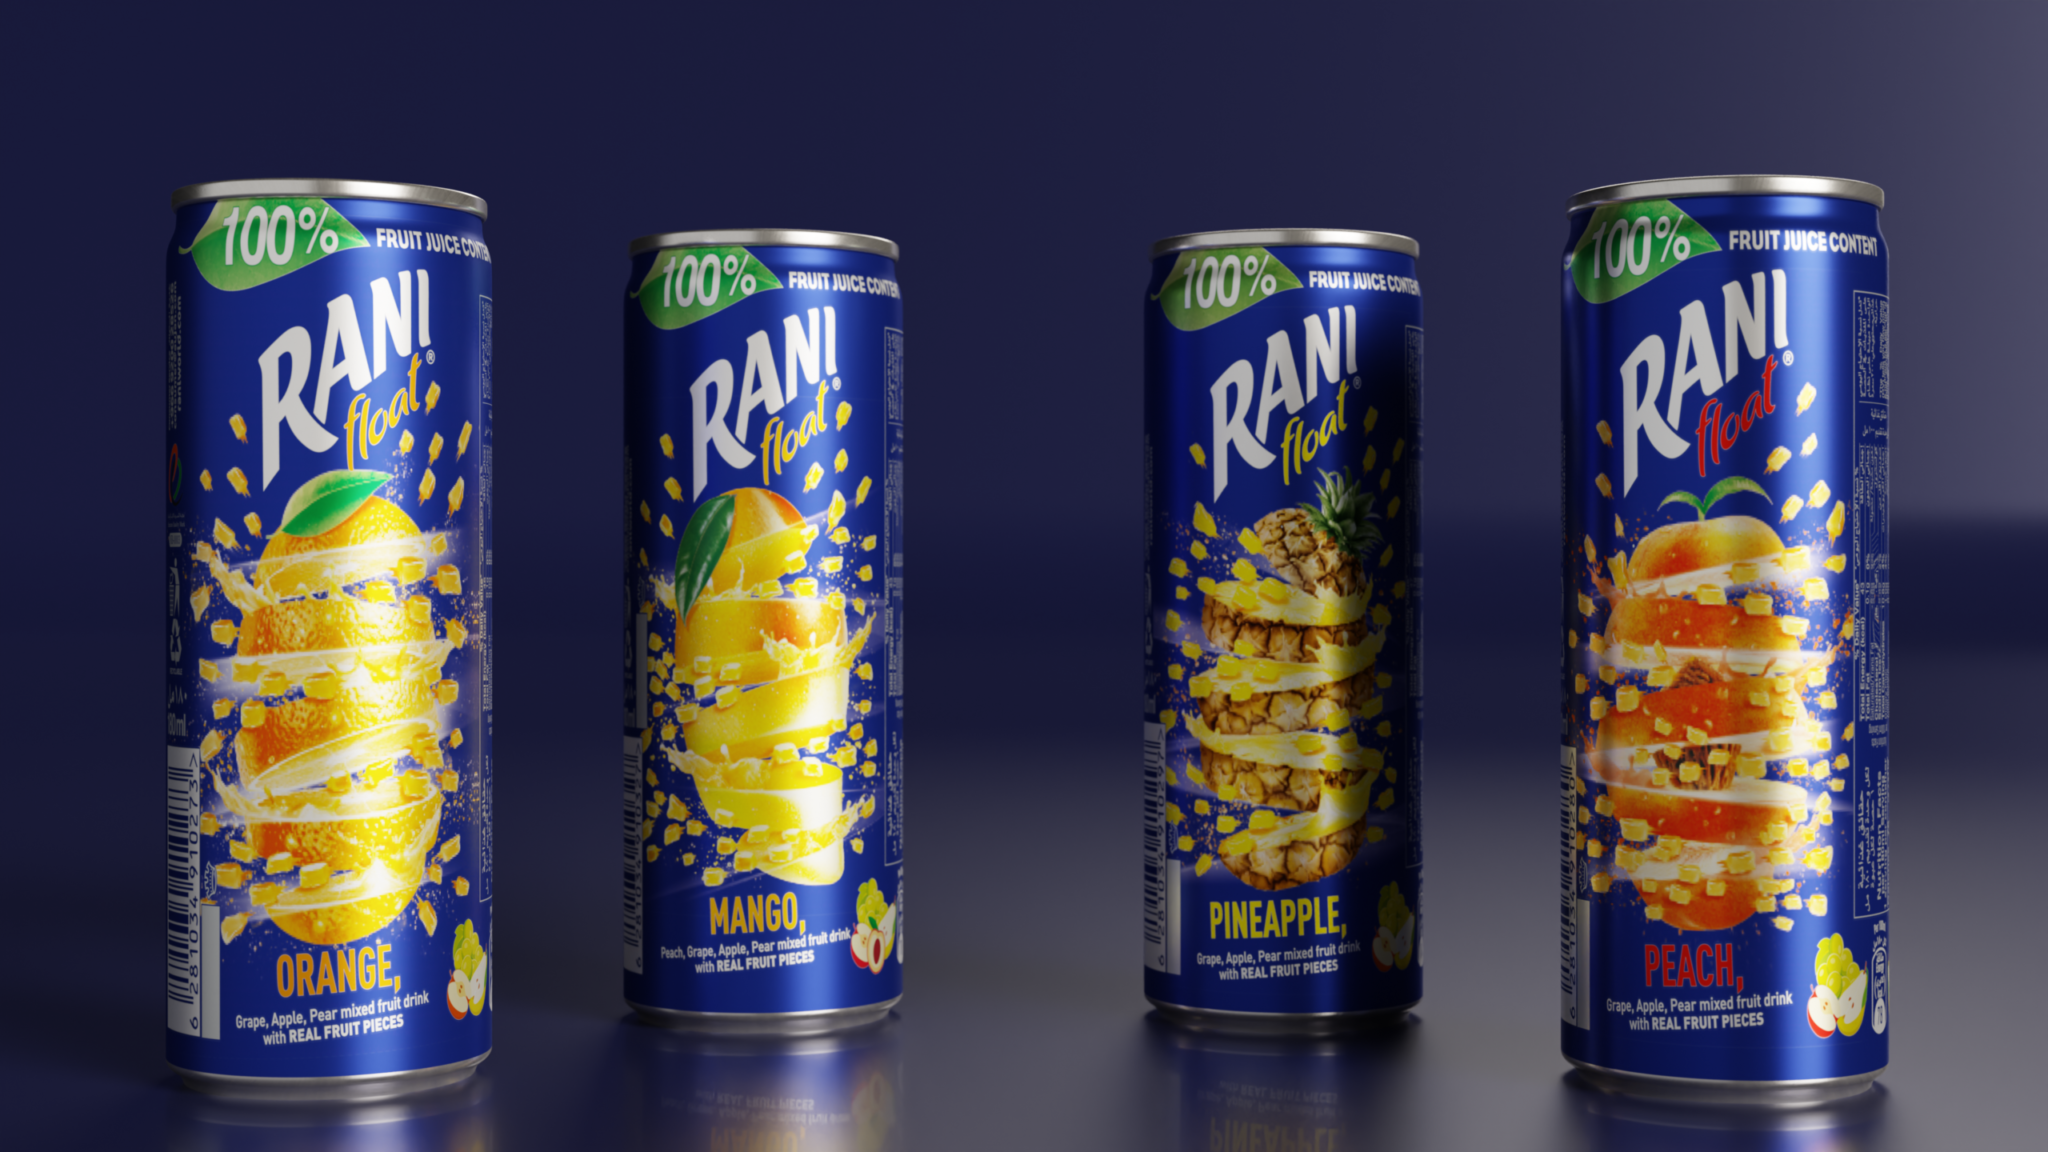 Rani cans lined up